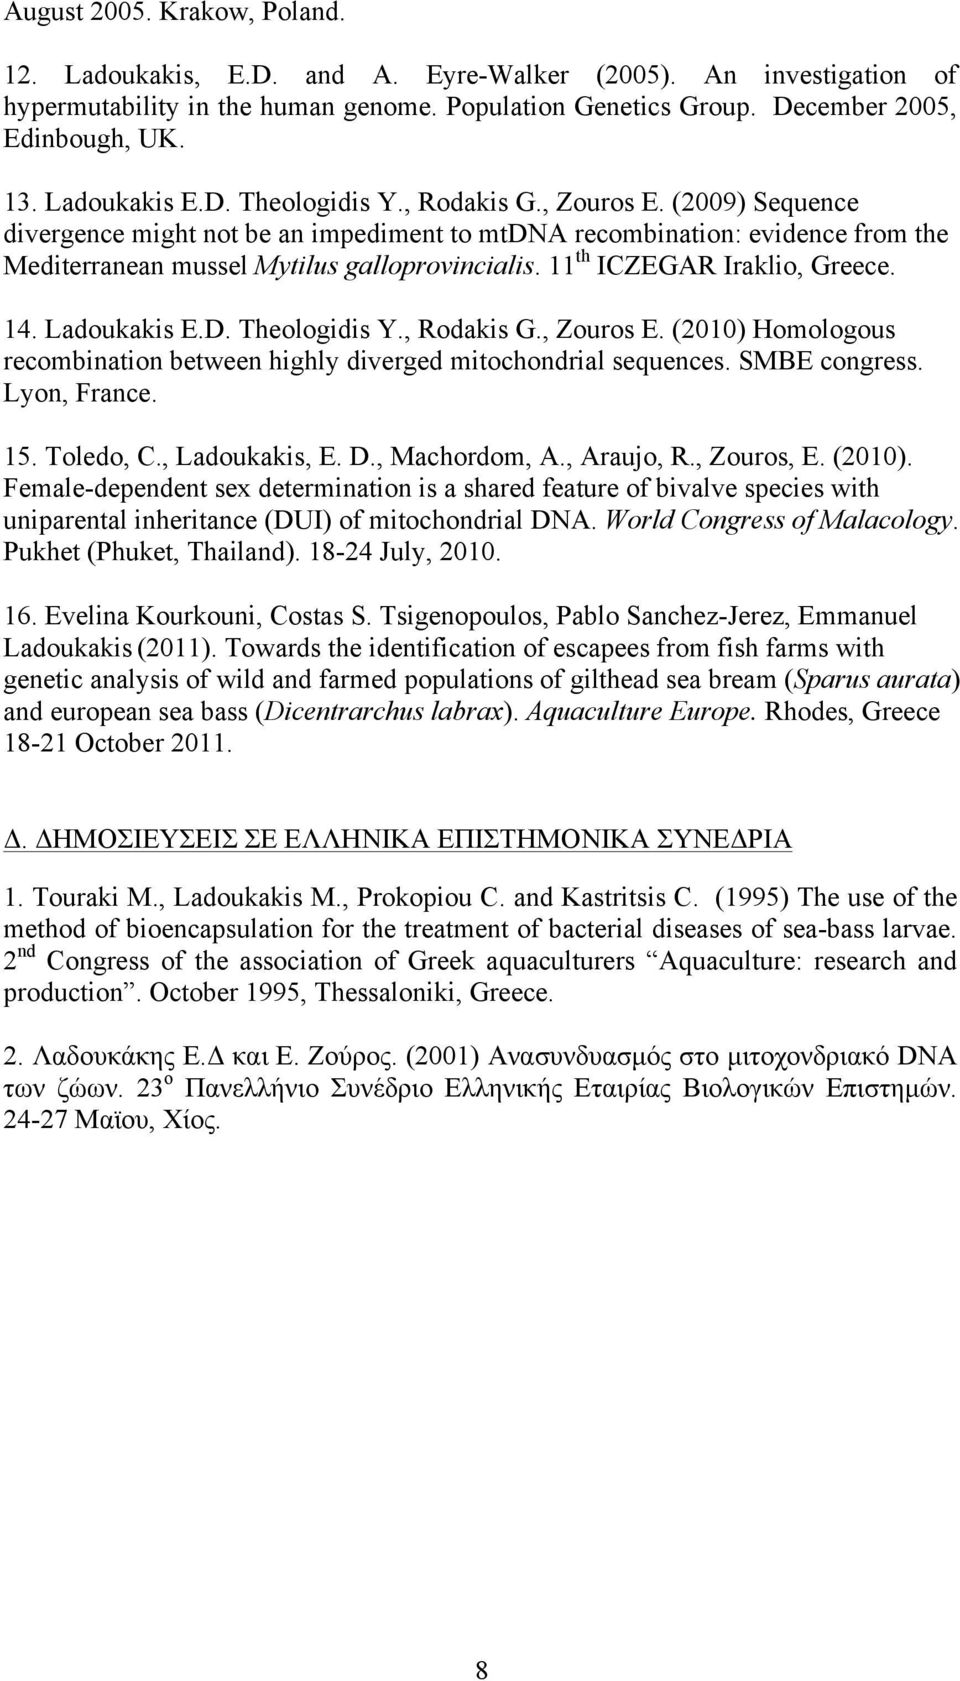 11 th ICZEGAR Iraklio, Greece. 14. Ladoukakis E.D. Theologidis Y., Rodakis G., Zouros E. (2010) Homologous recombination between highly diverged mitochondrial sequences. SMBE congress. Lyon, France.